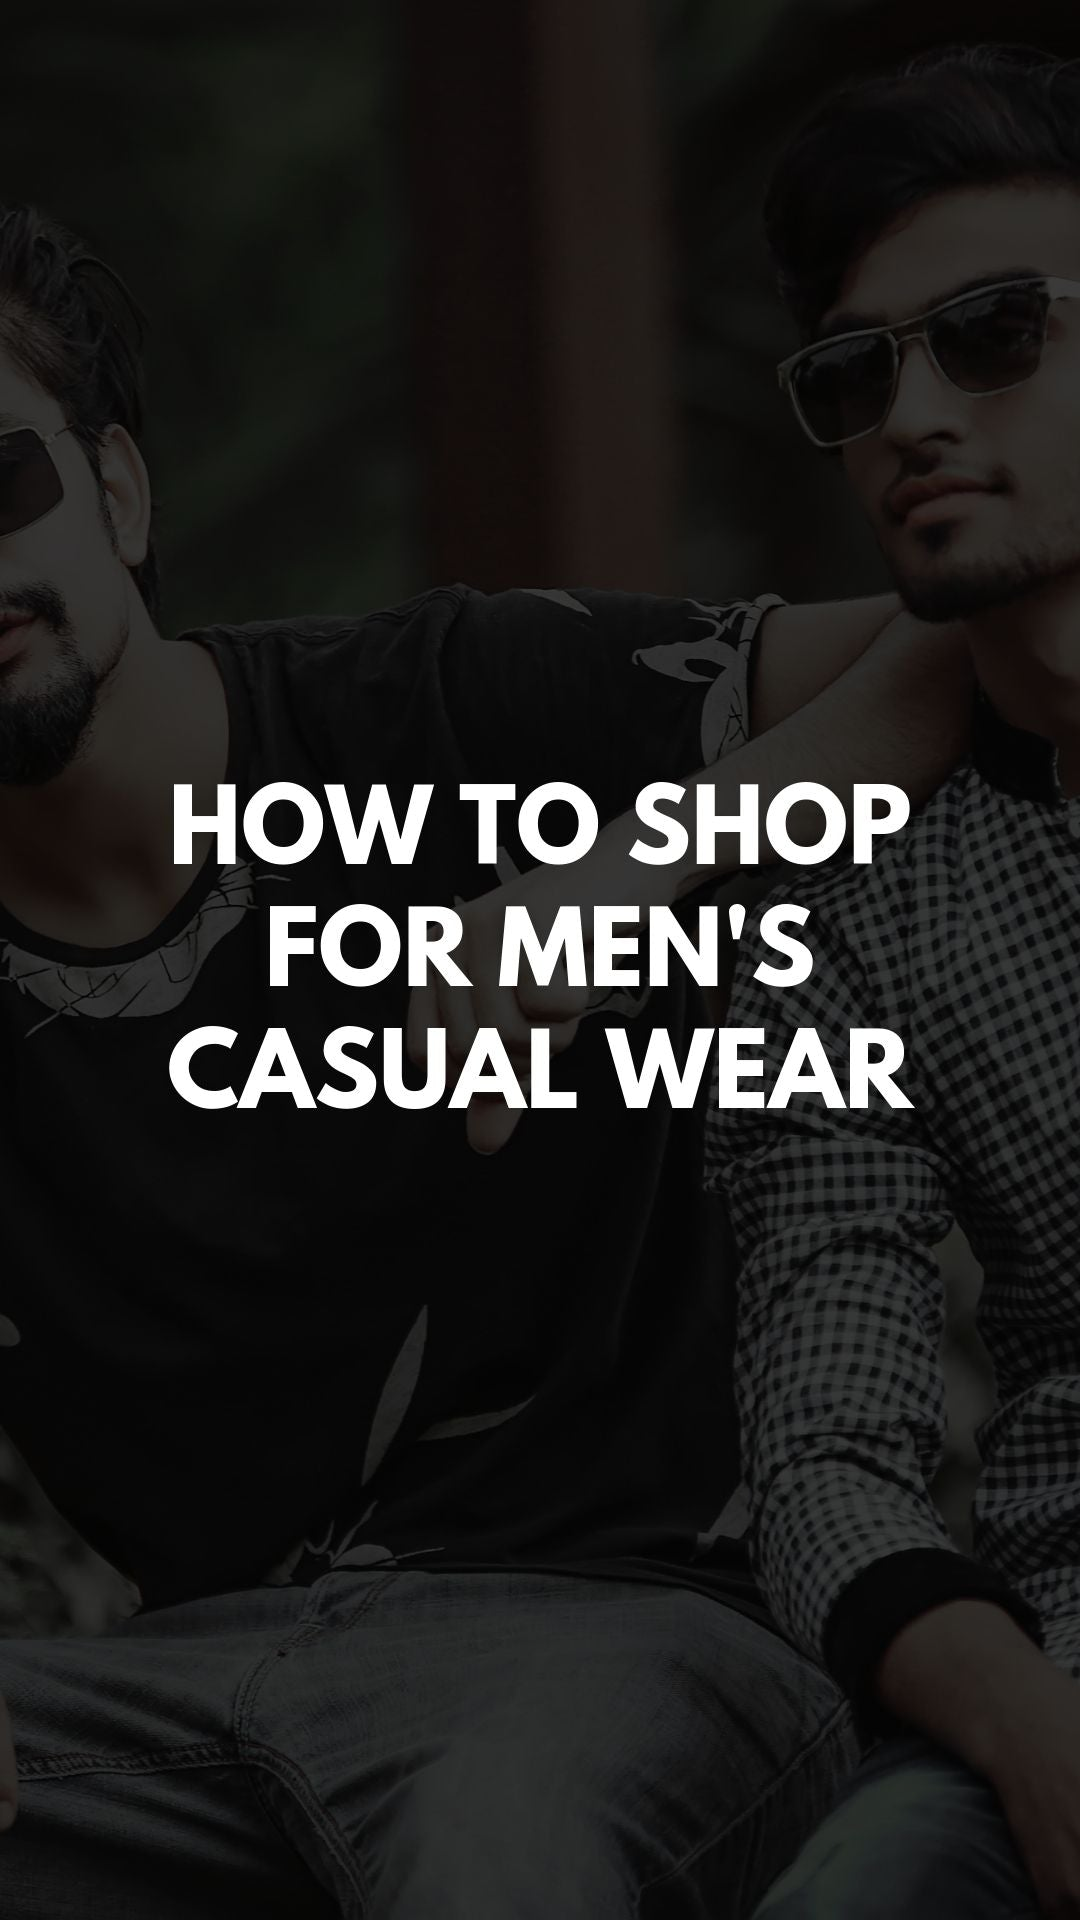 HOW TO SHOP FOR MEN'S CASUAL WEAR